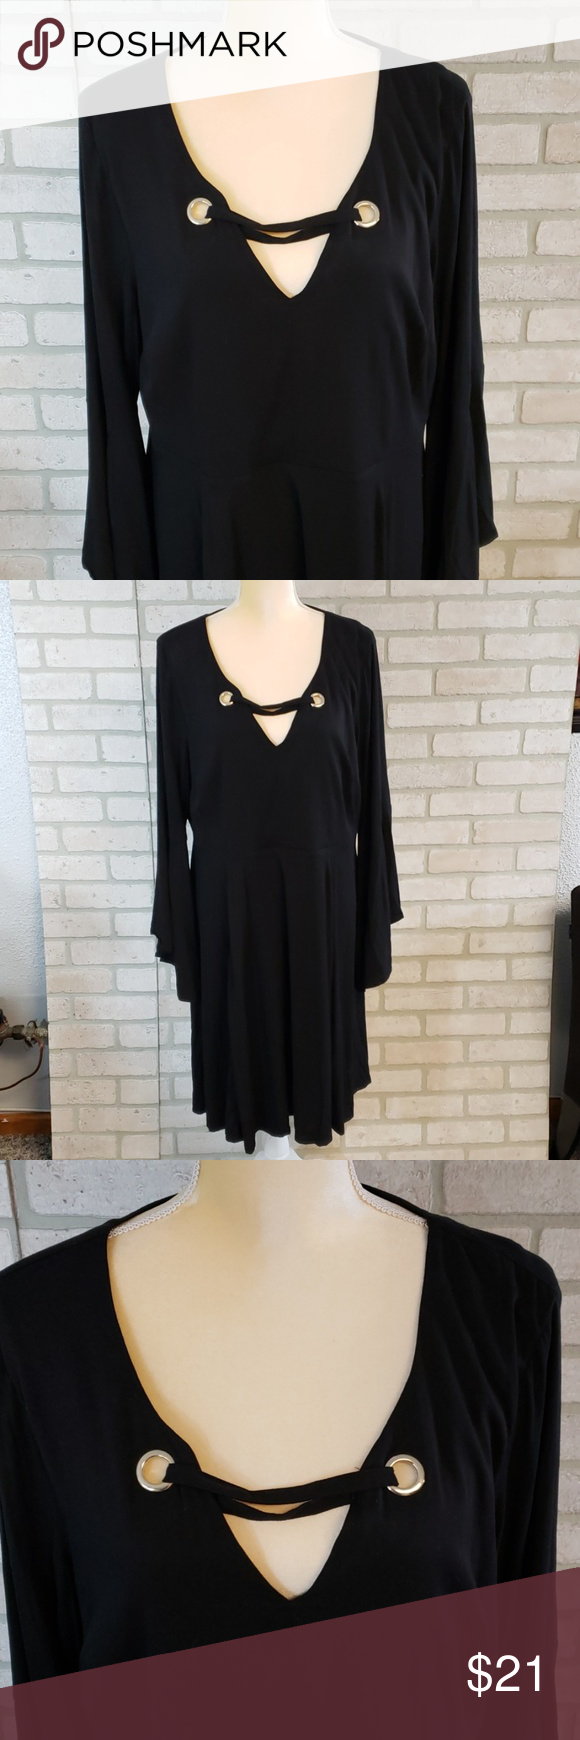 Torrid Amazing Black Dress Size 2 Torrid Back Zip Dress With Gold Accents At The Neck Very Classy Size 2 Gently Used To Black Dress Torrid Dresses Torrid [ 1740 x 580 Pixel ]